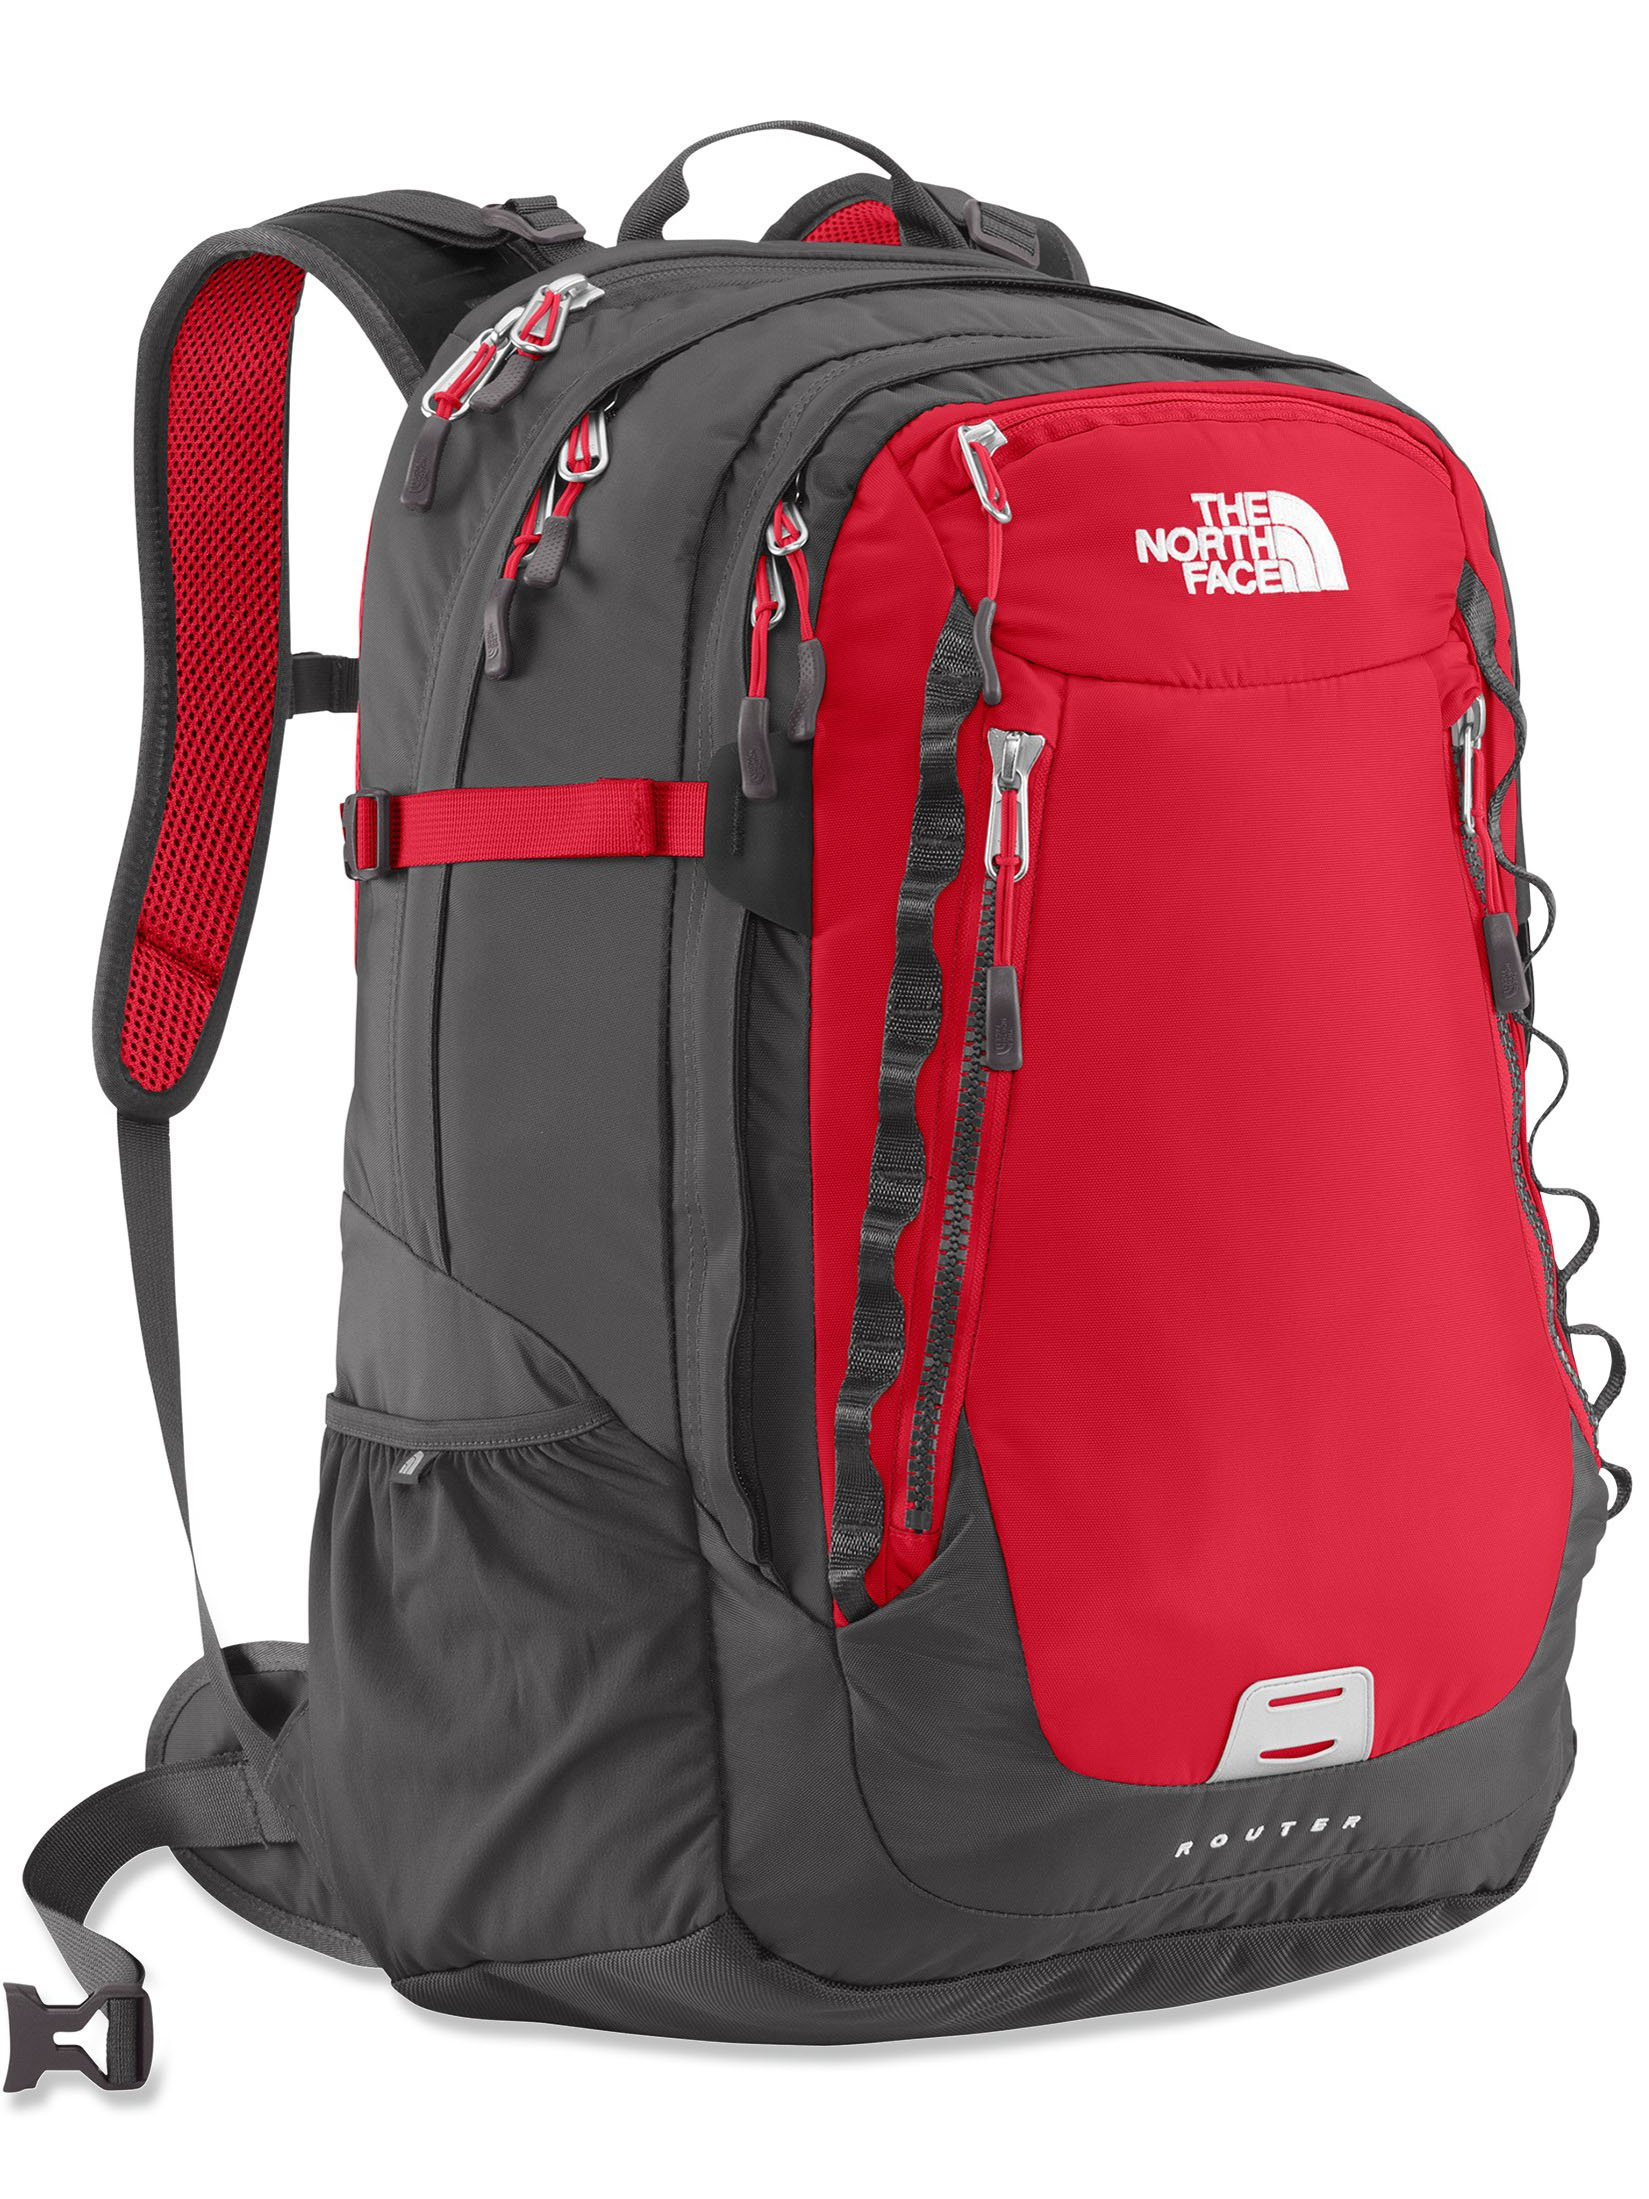 The North Face Router Red - Balo laptop - Shop Balo Hàng Hiệu